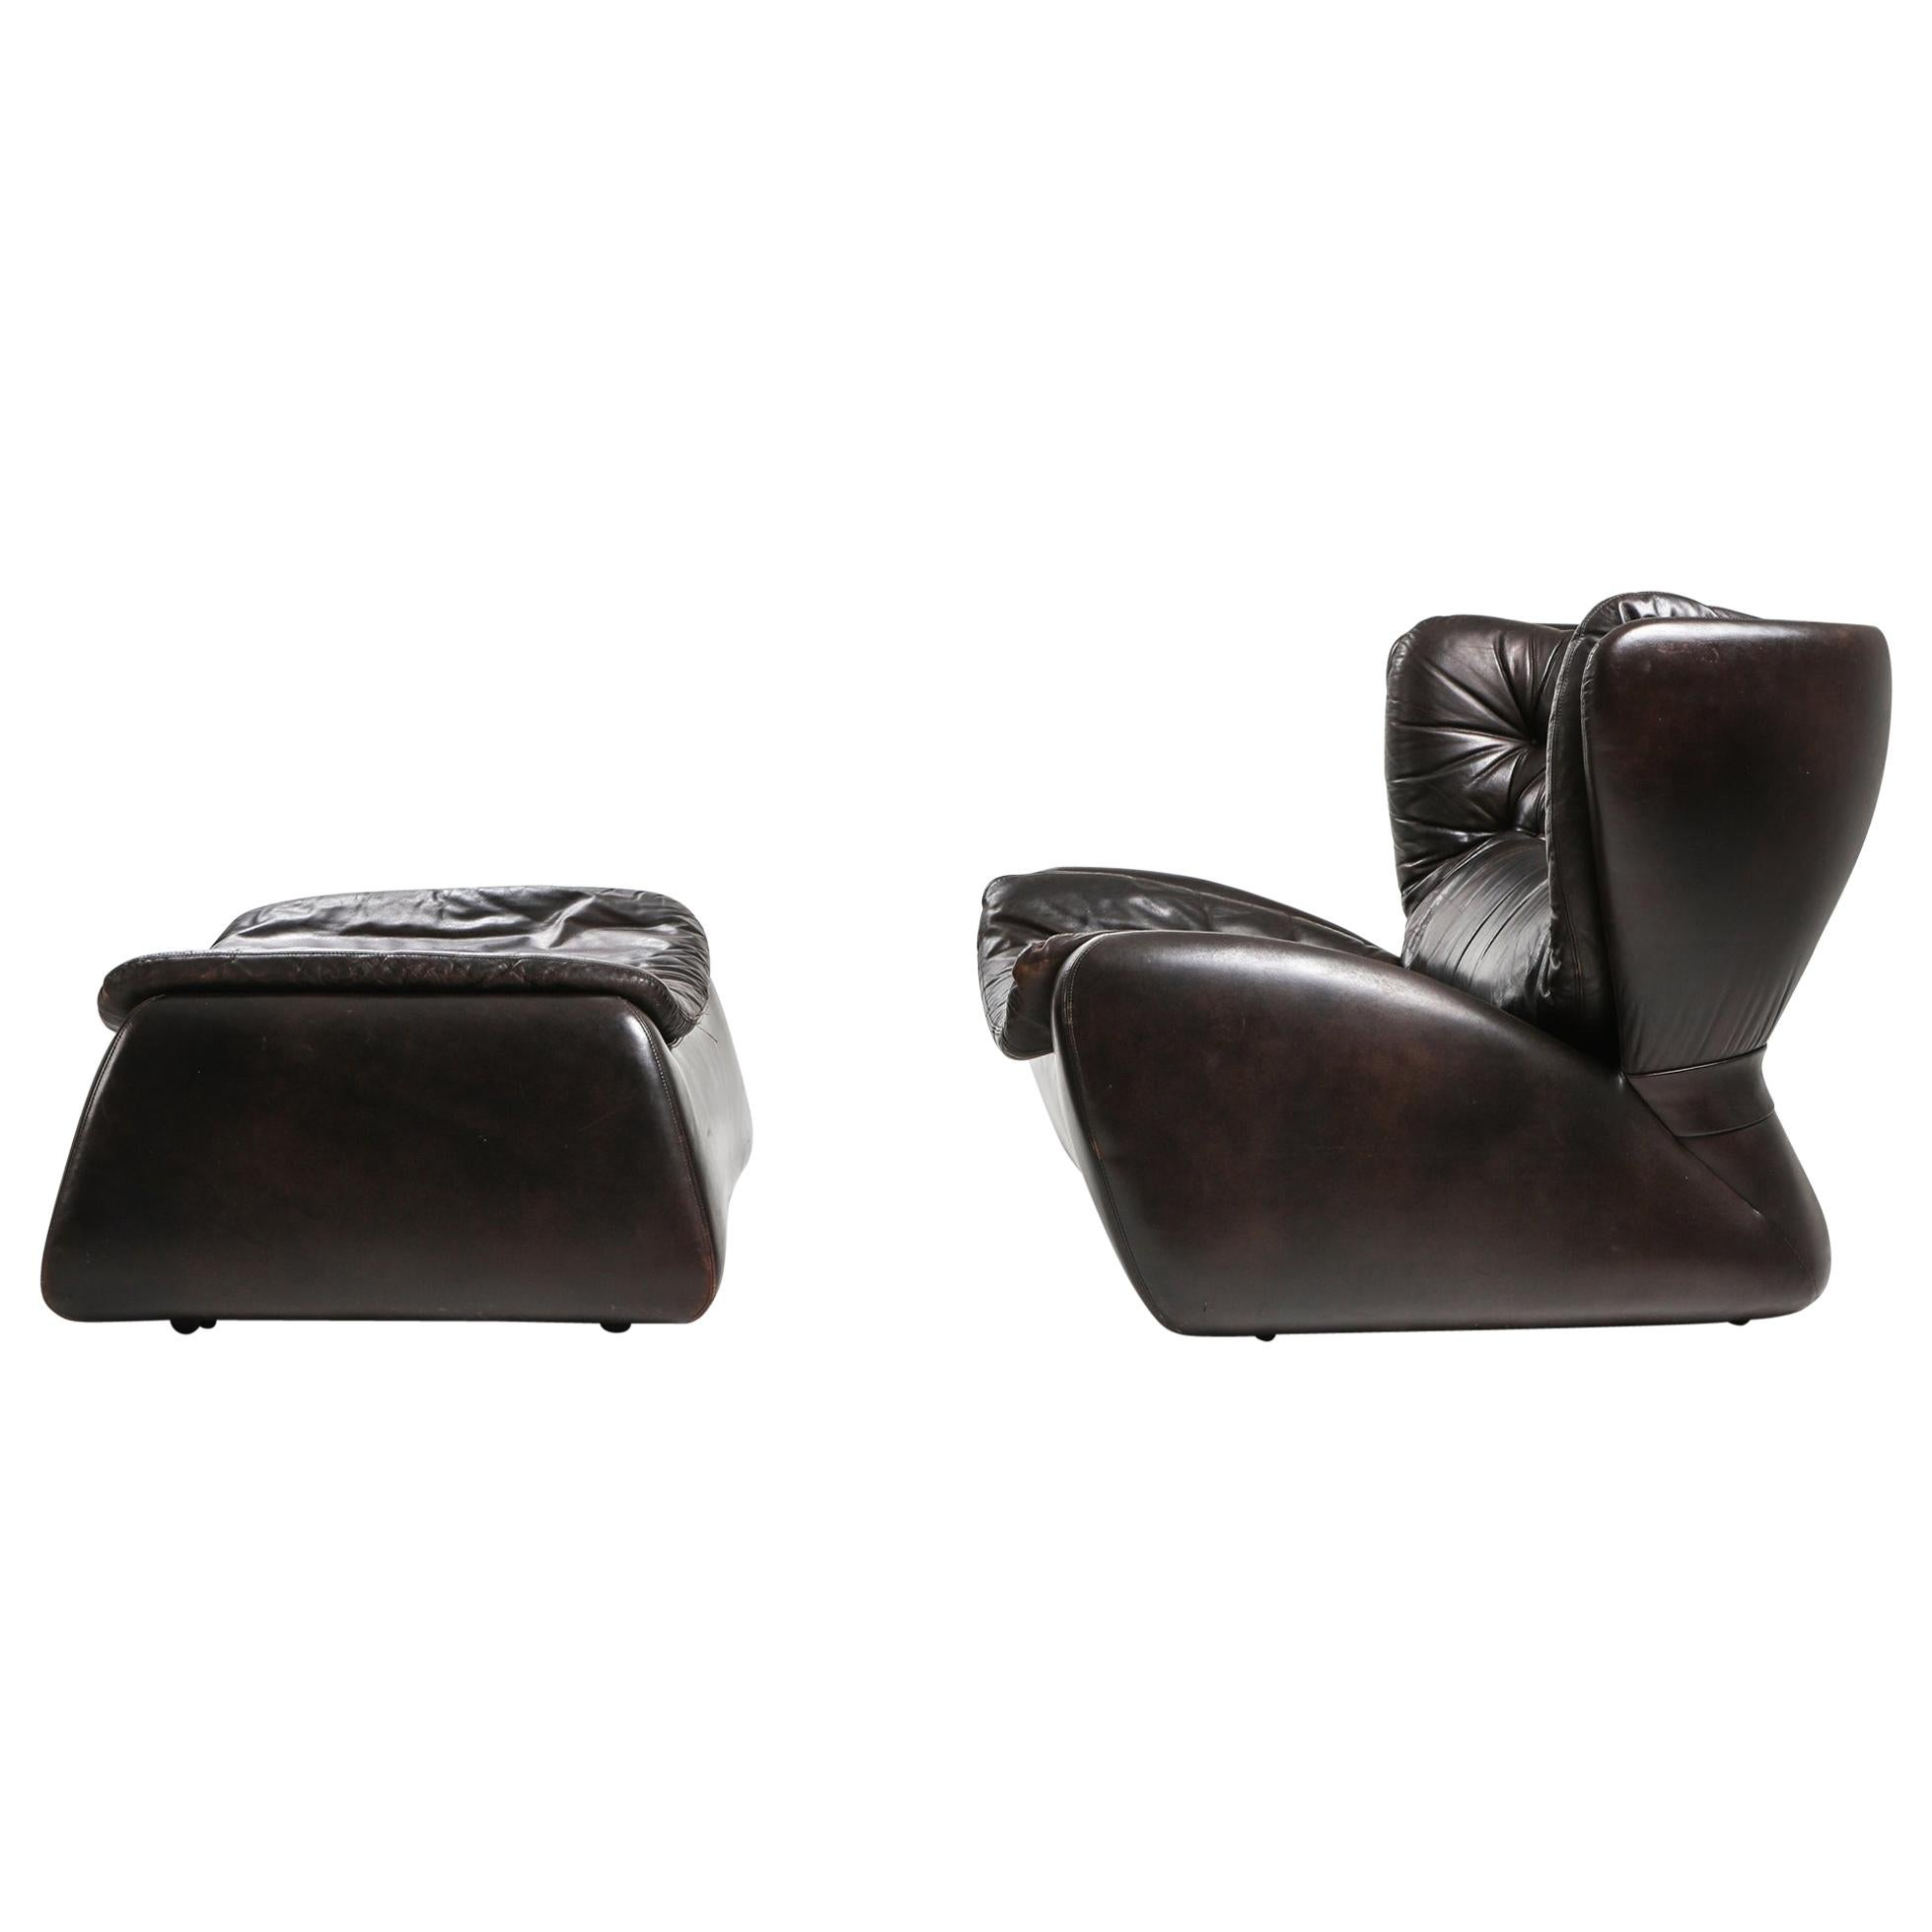 1970s Belgian Lounge Chair with Ottoman 'Pasha' by Durlet